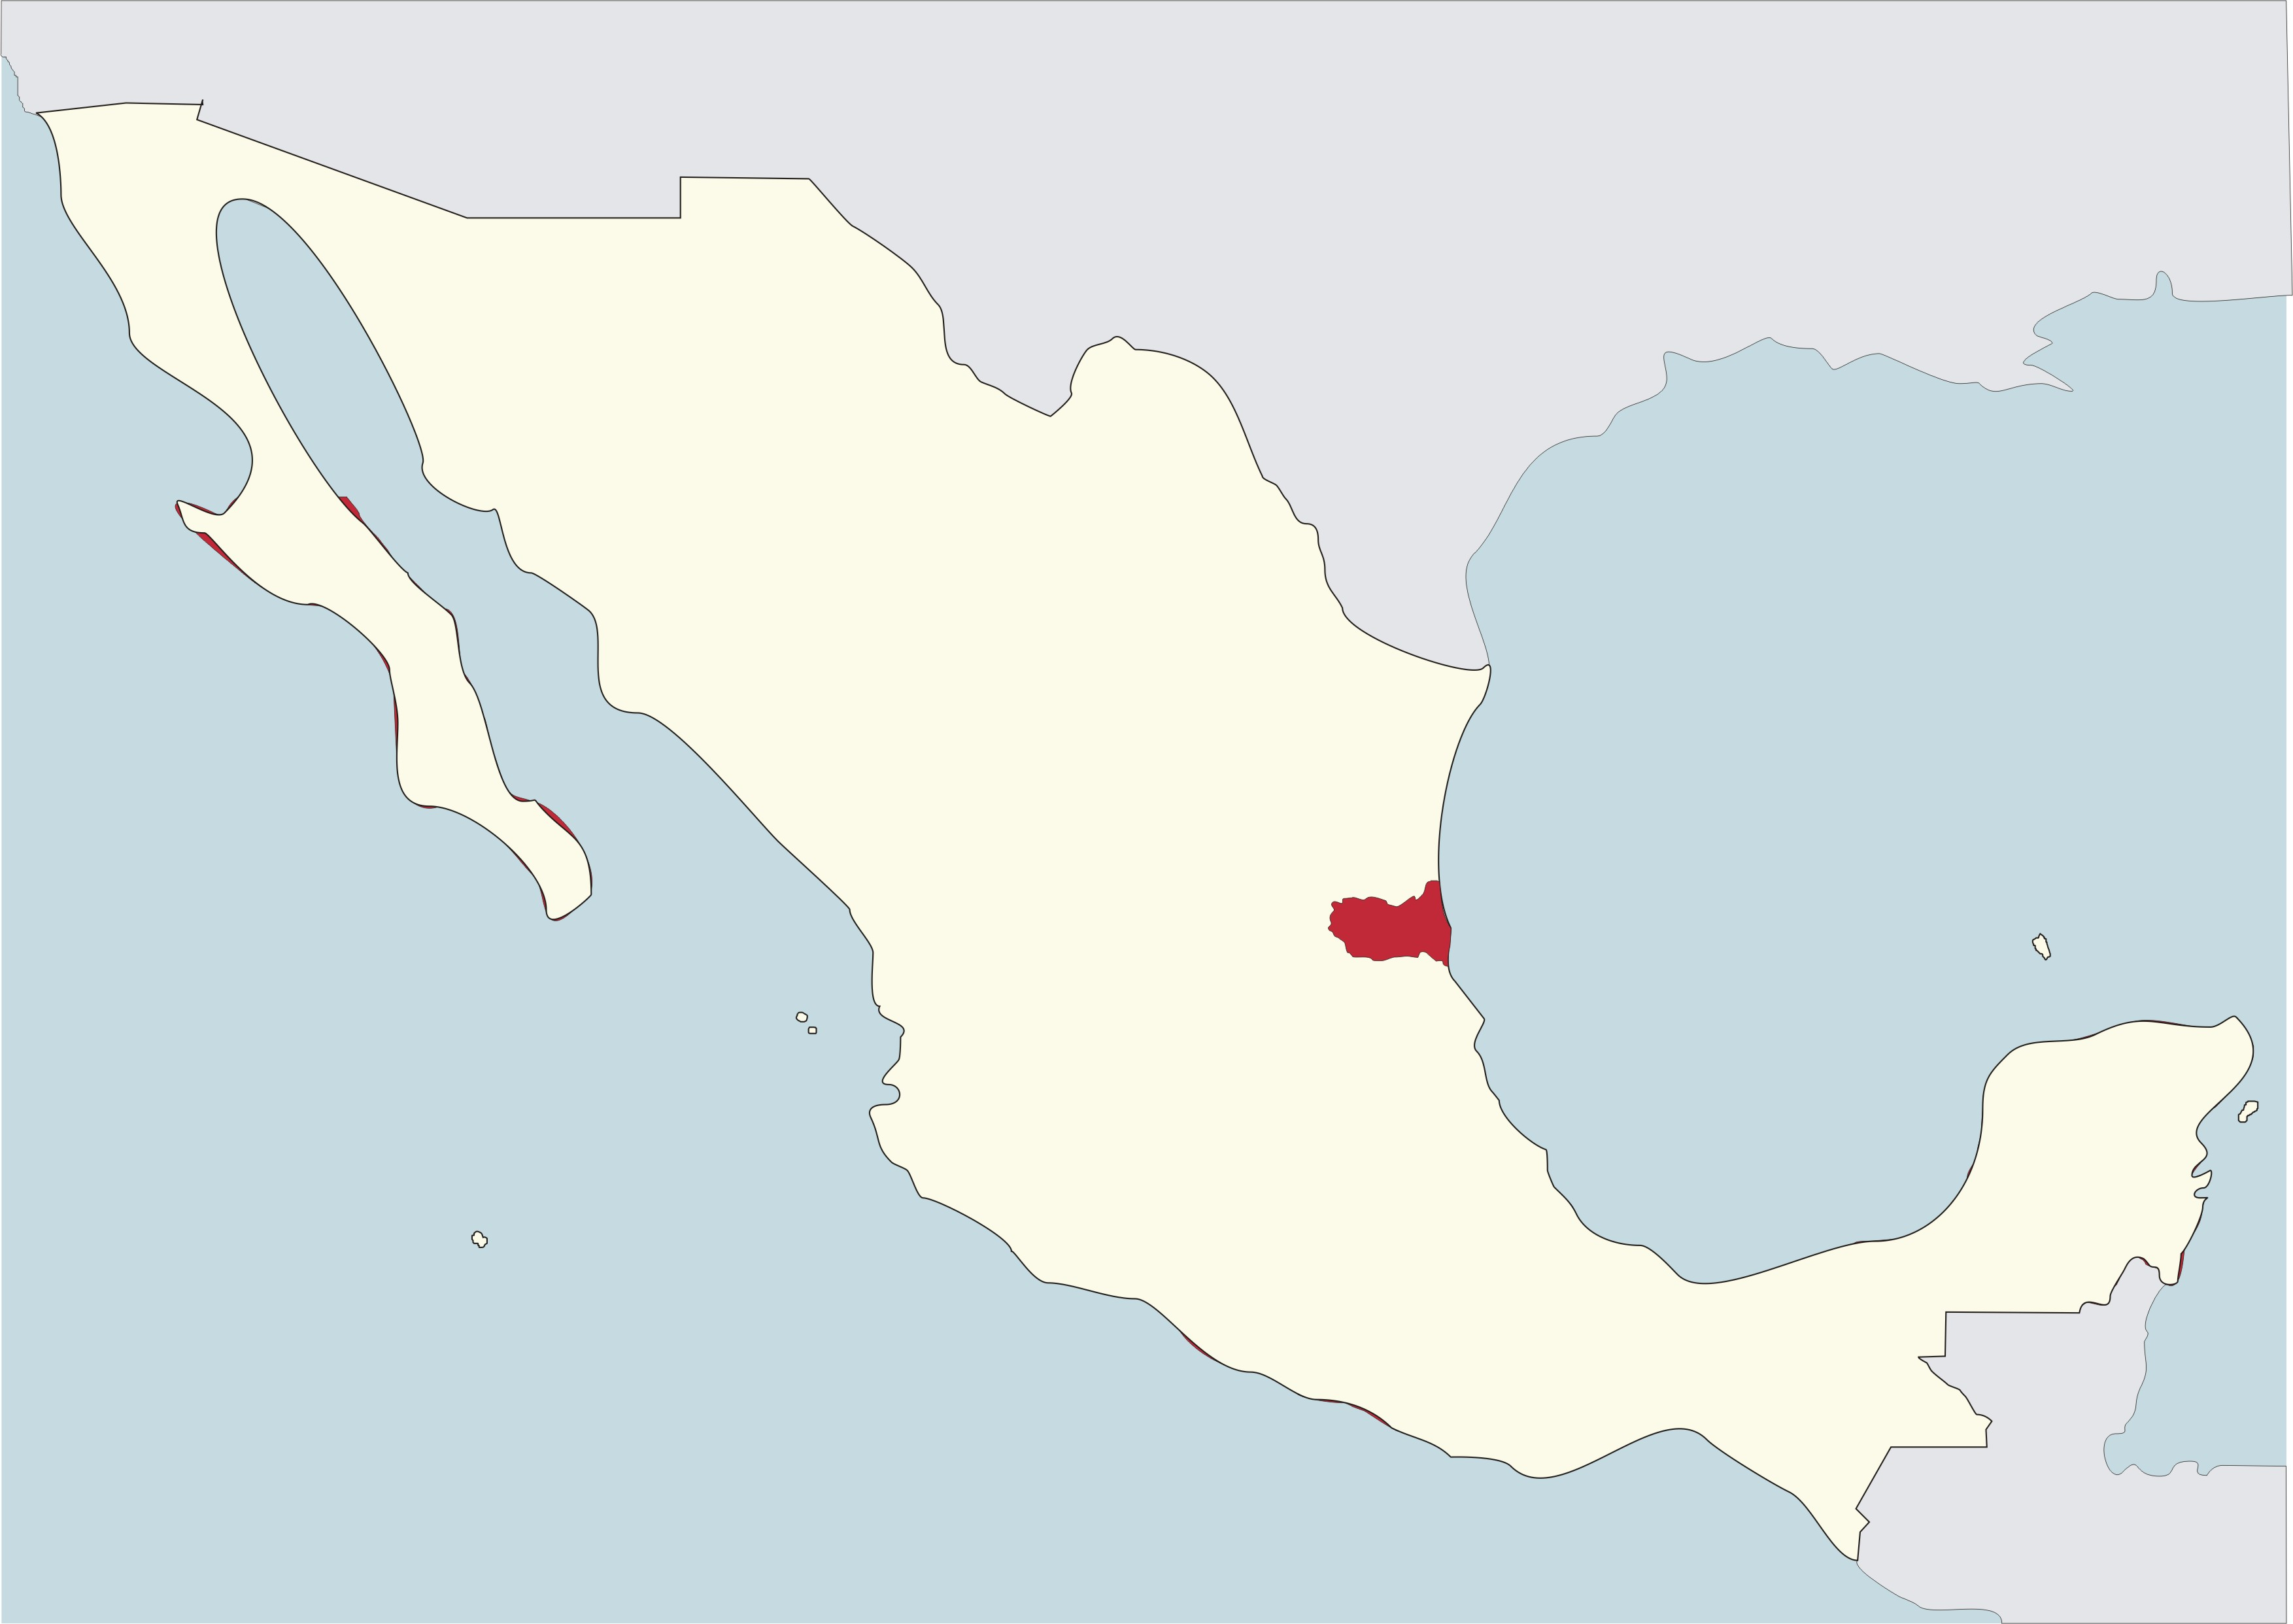 FileRoman Catholic Diocese of Tampico in Mexicojpg Wikimedia Commons